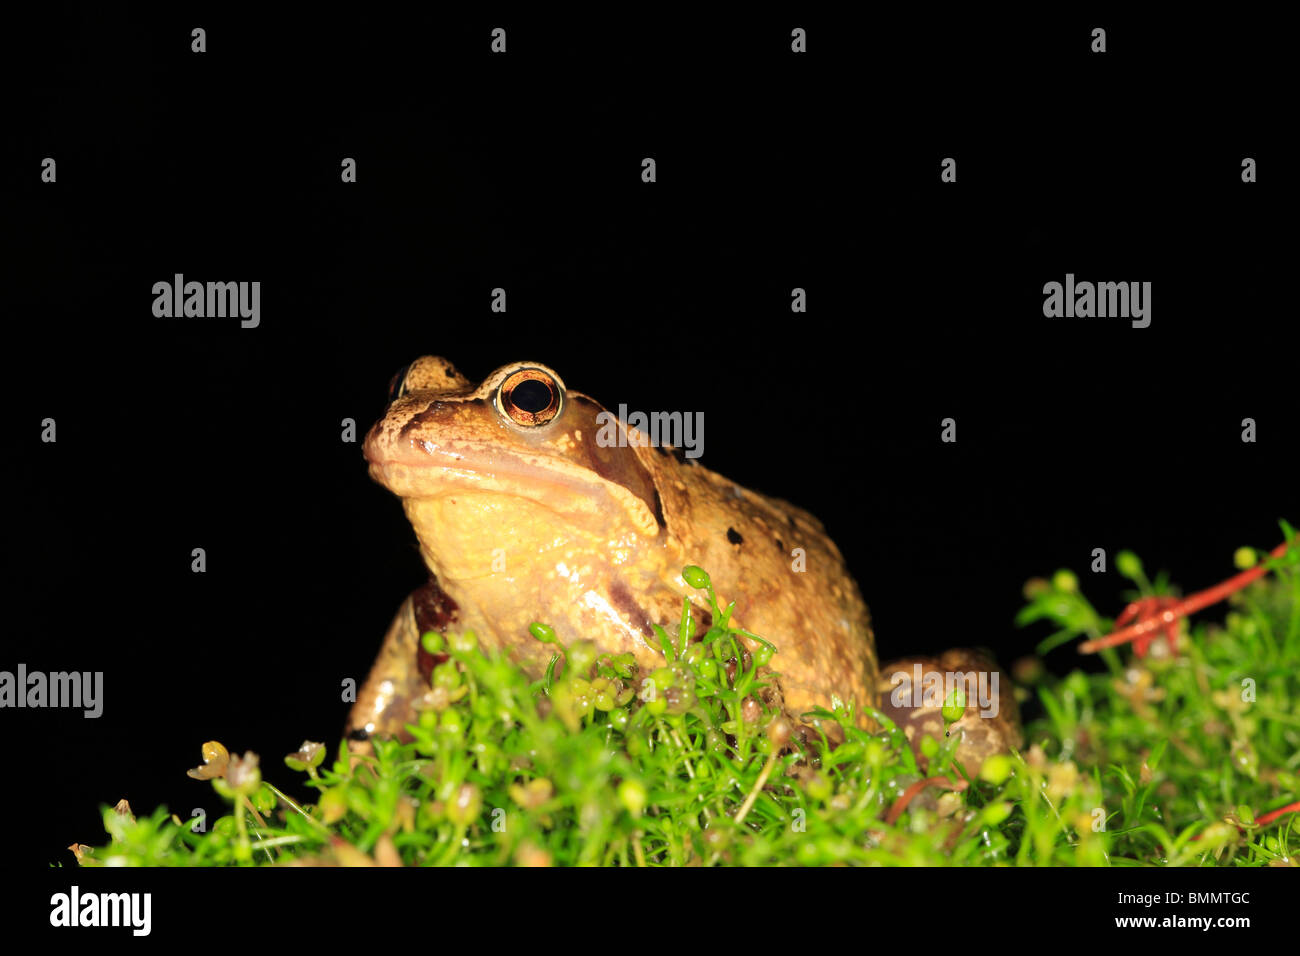 COMMON FROG (Rana temporaria) SITTING IN PLANT BORDER AT NIGHT FRONT VIEW - Stock Image